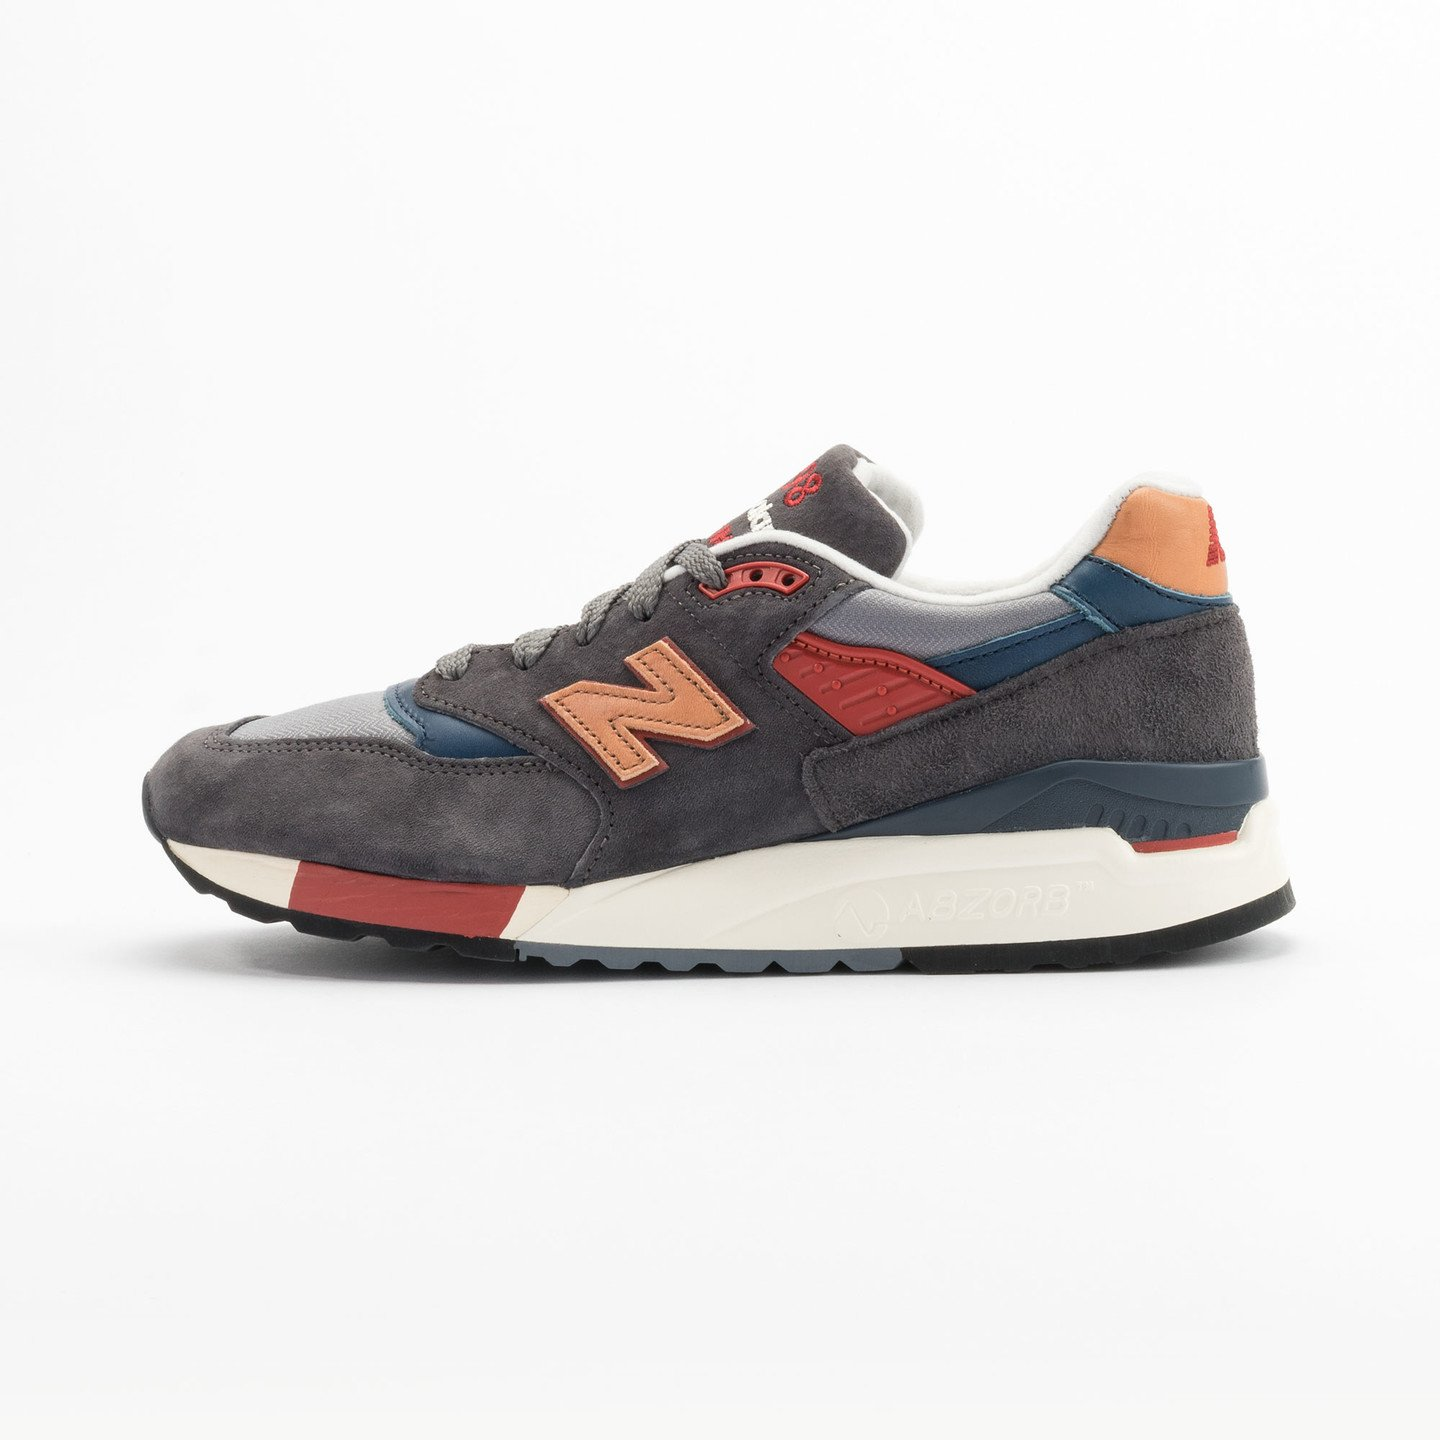 New Balance M998 Made in USA Dark Grey / Beige / Red / Navy M998DBR-44